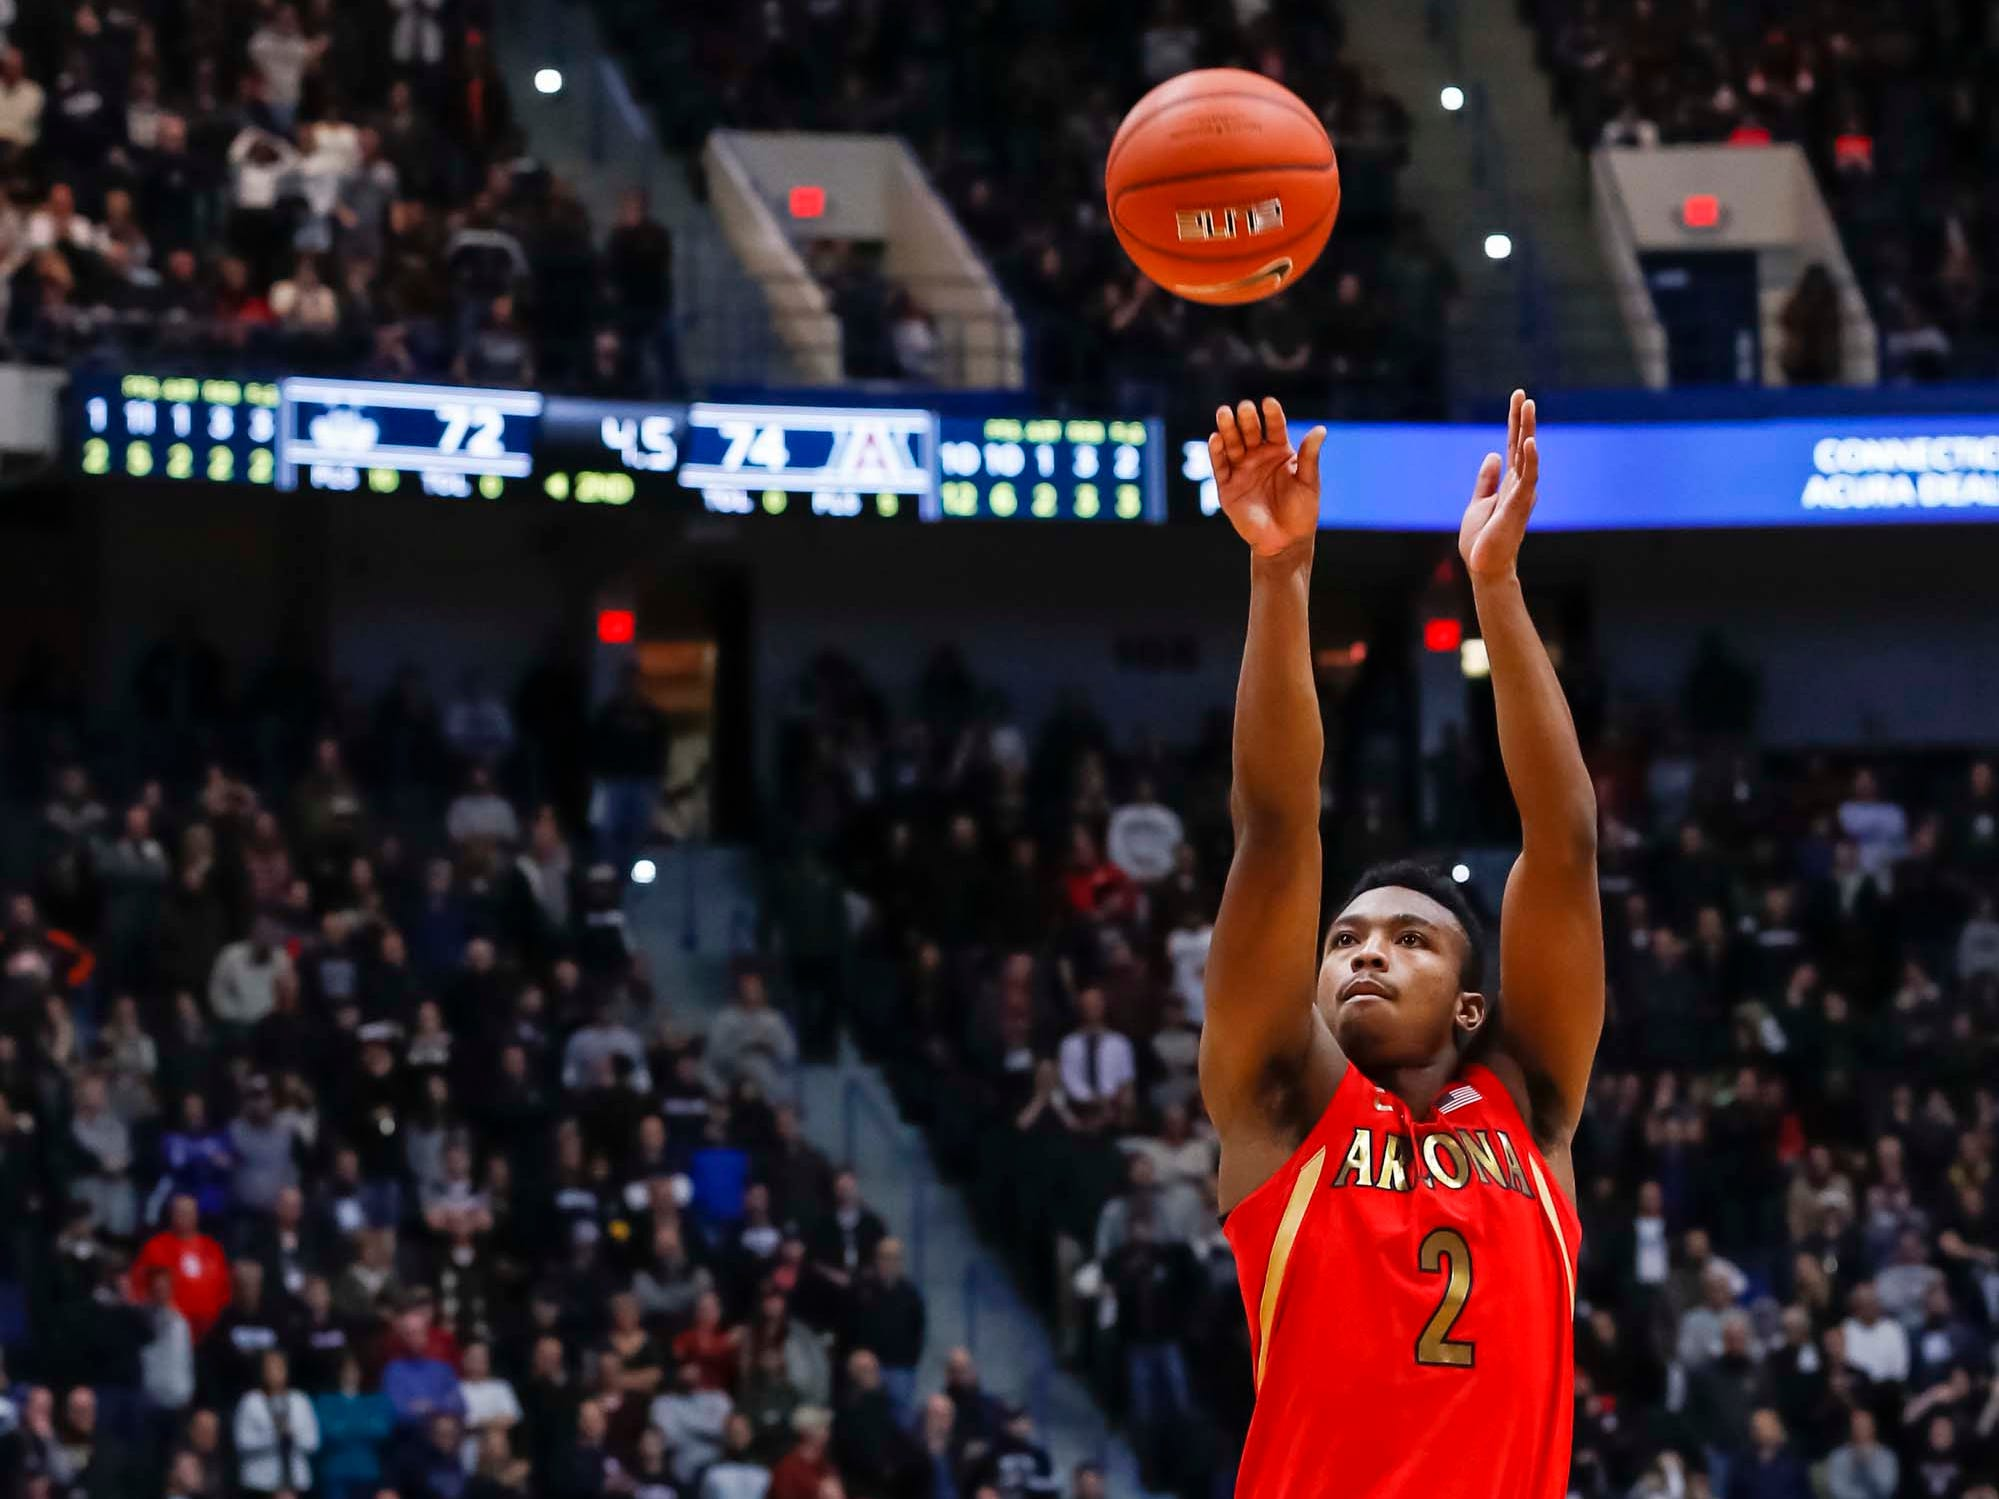 Dec 2, 2018; Storrs, CT, USA; Arizona Wildcats guard Brandon Williams (2) makes the free-throw basket in the last seconds of play against the Connecticut Huskies in the second half at XL Center. Arizona defeated UConn 76-72. Mandatory Credit: David Butler II-USA TODAY Sports